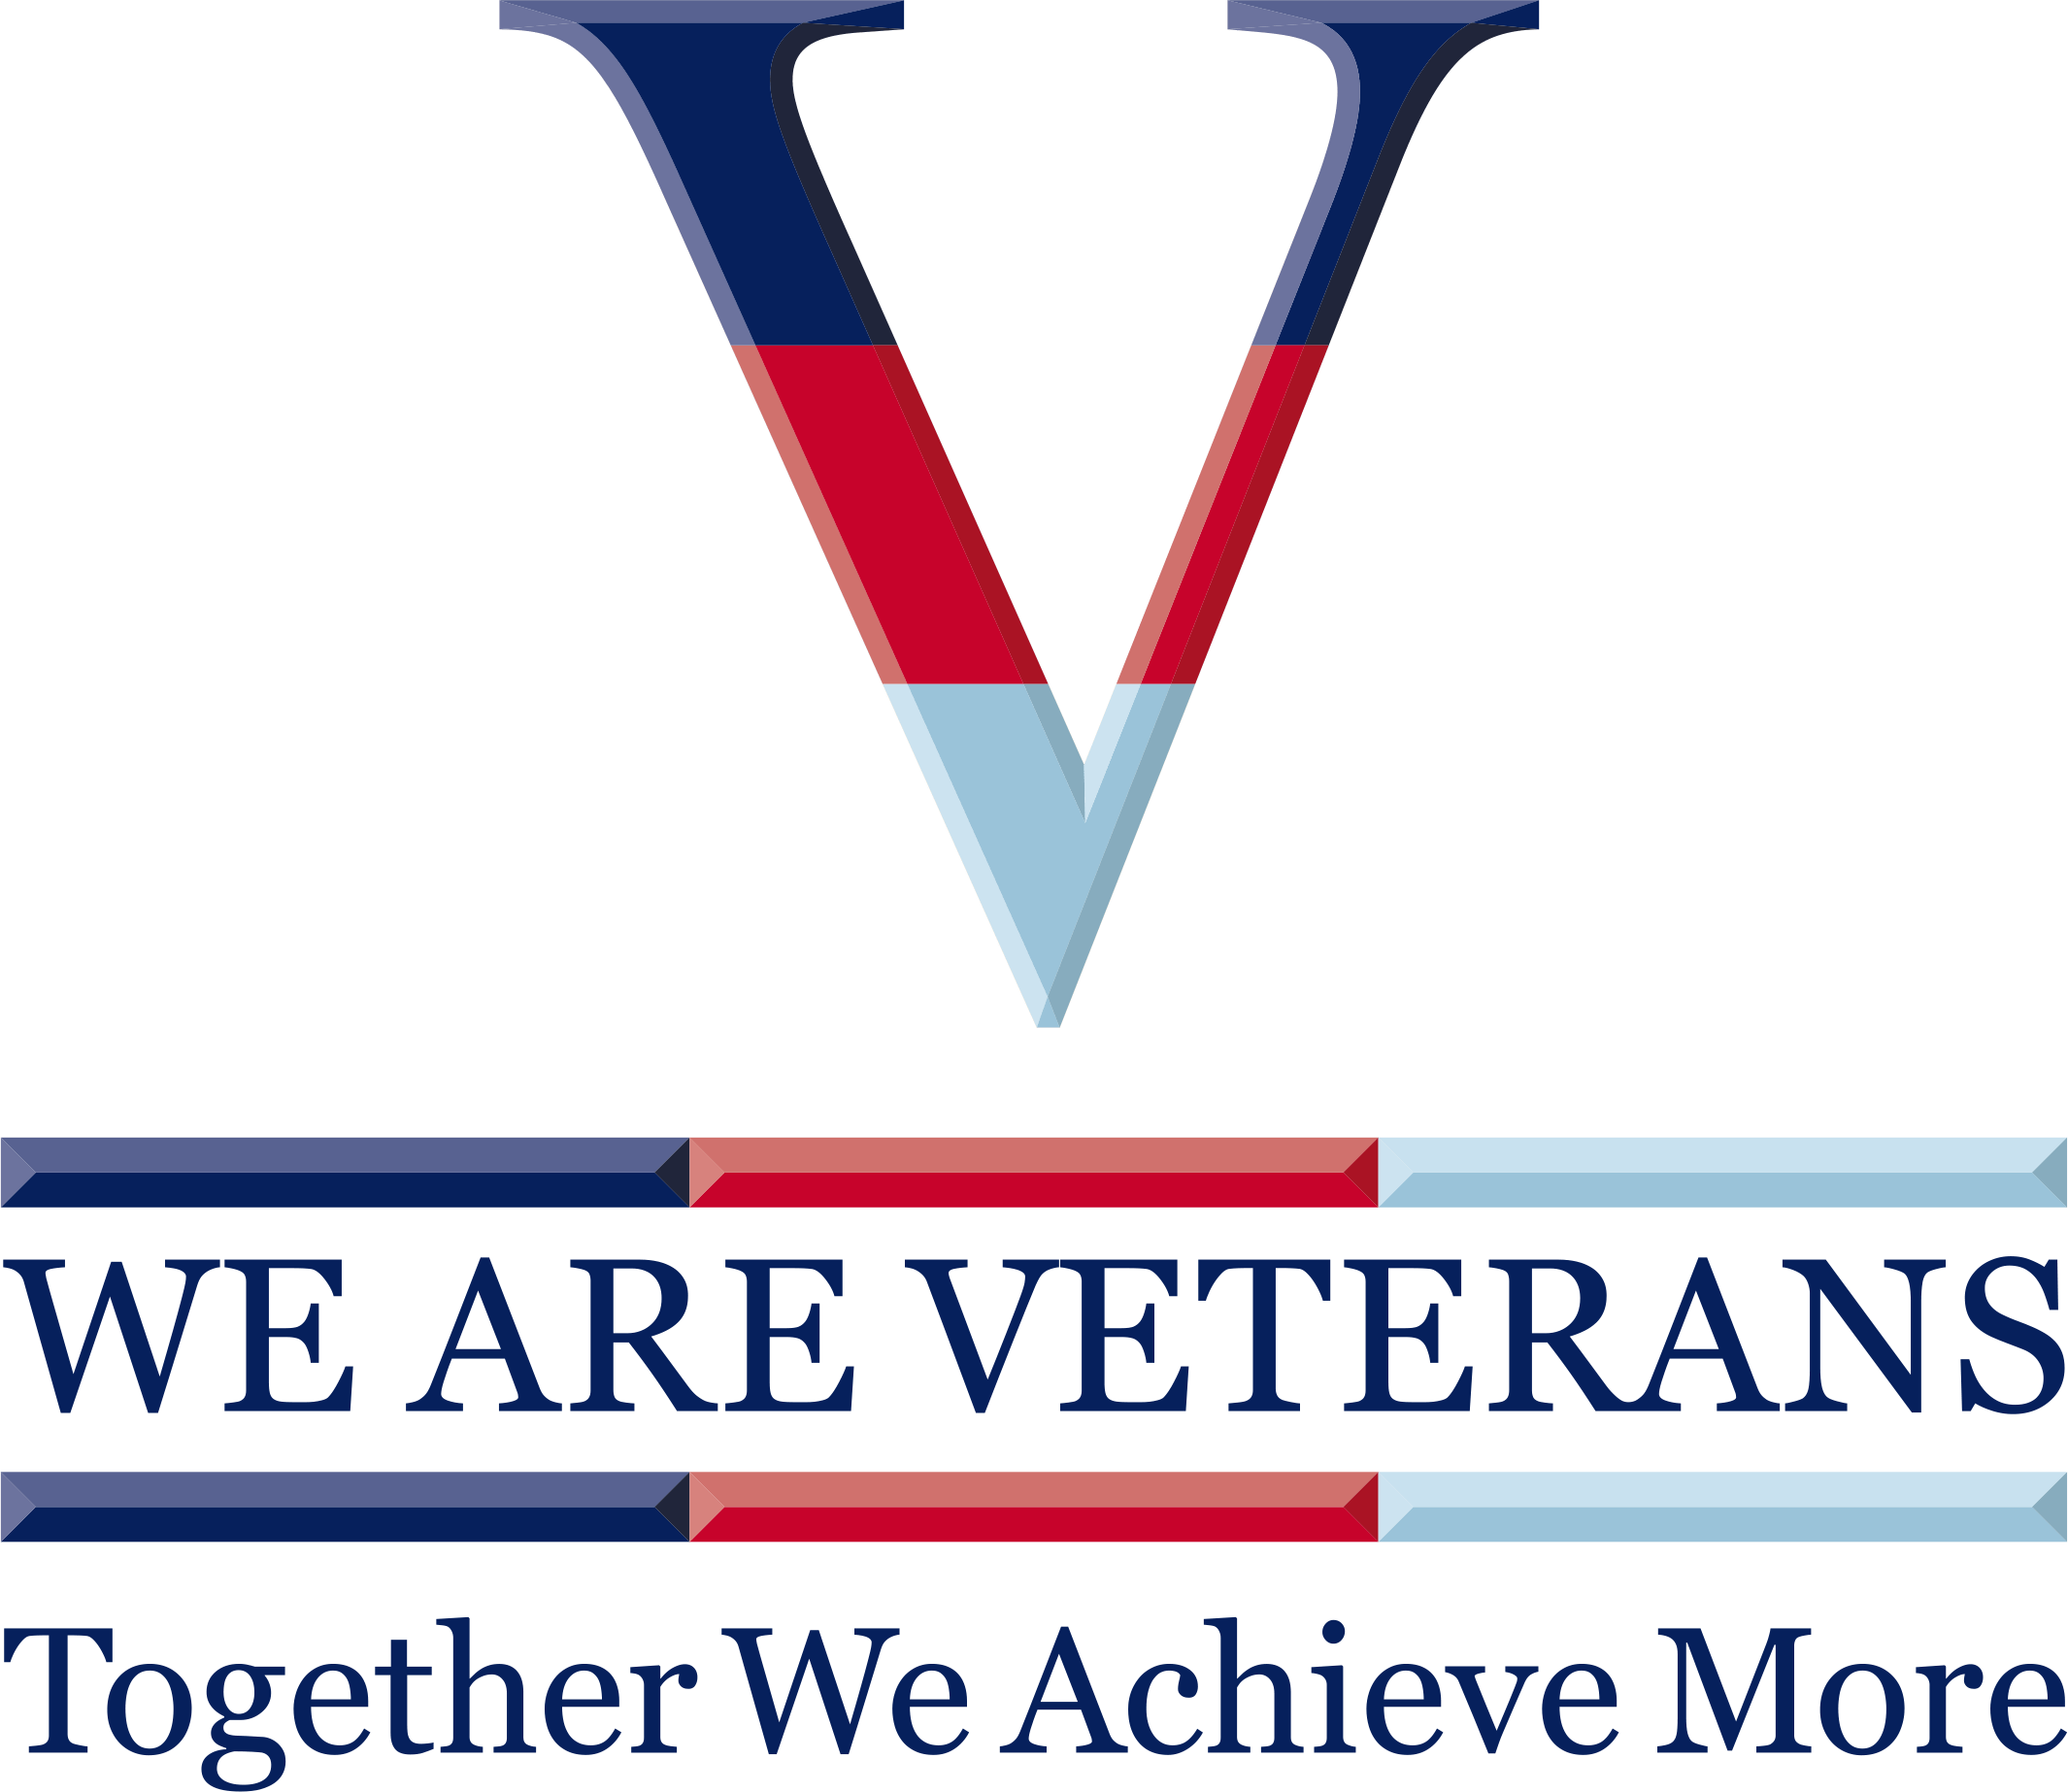 We Are Veterans